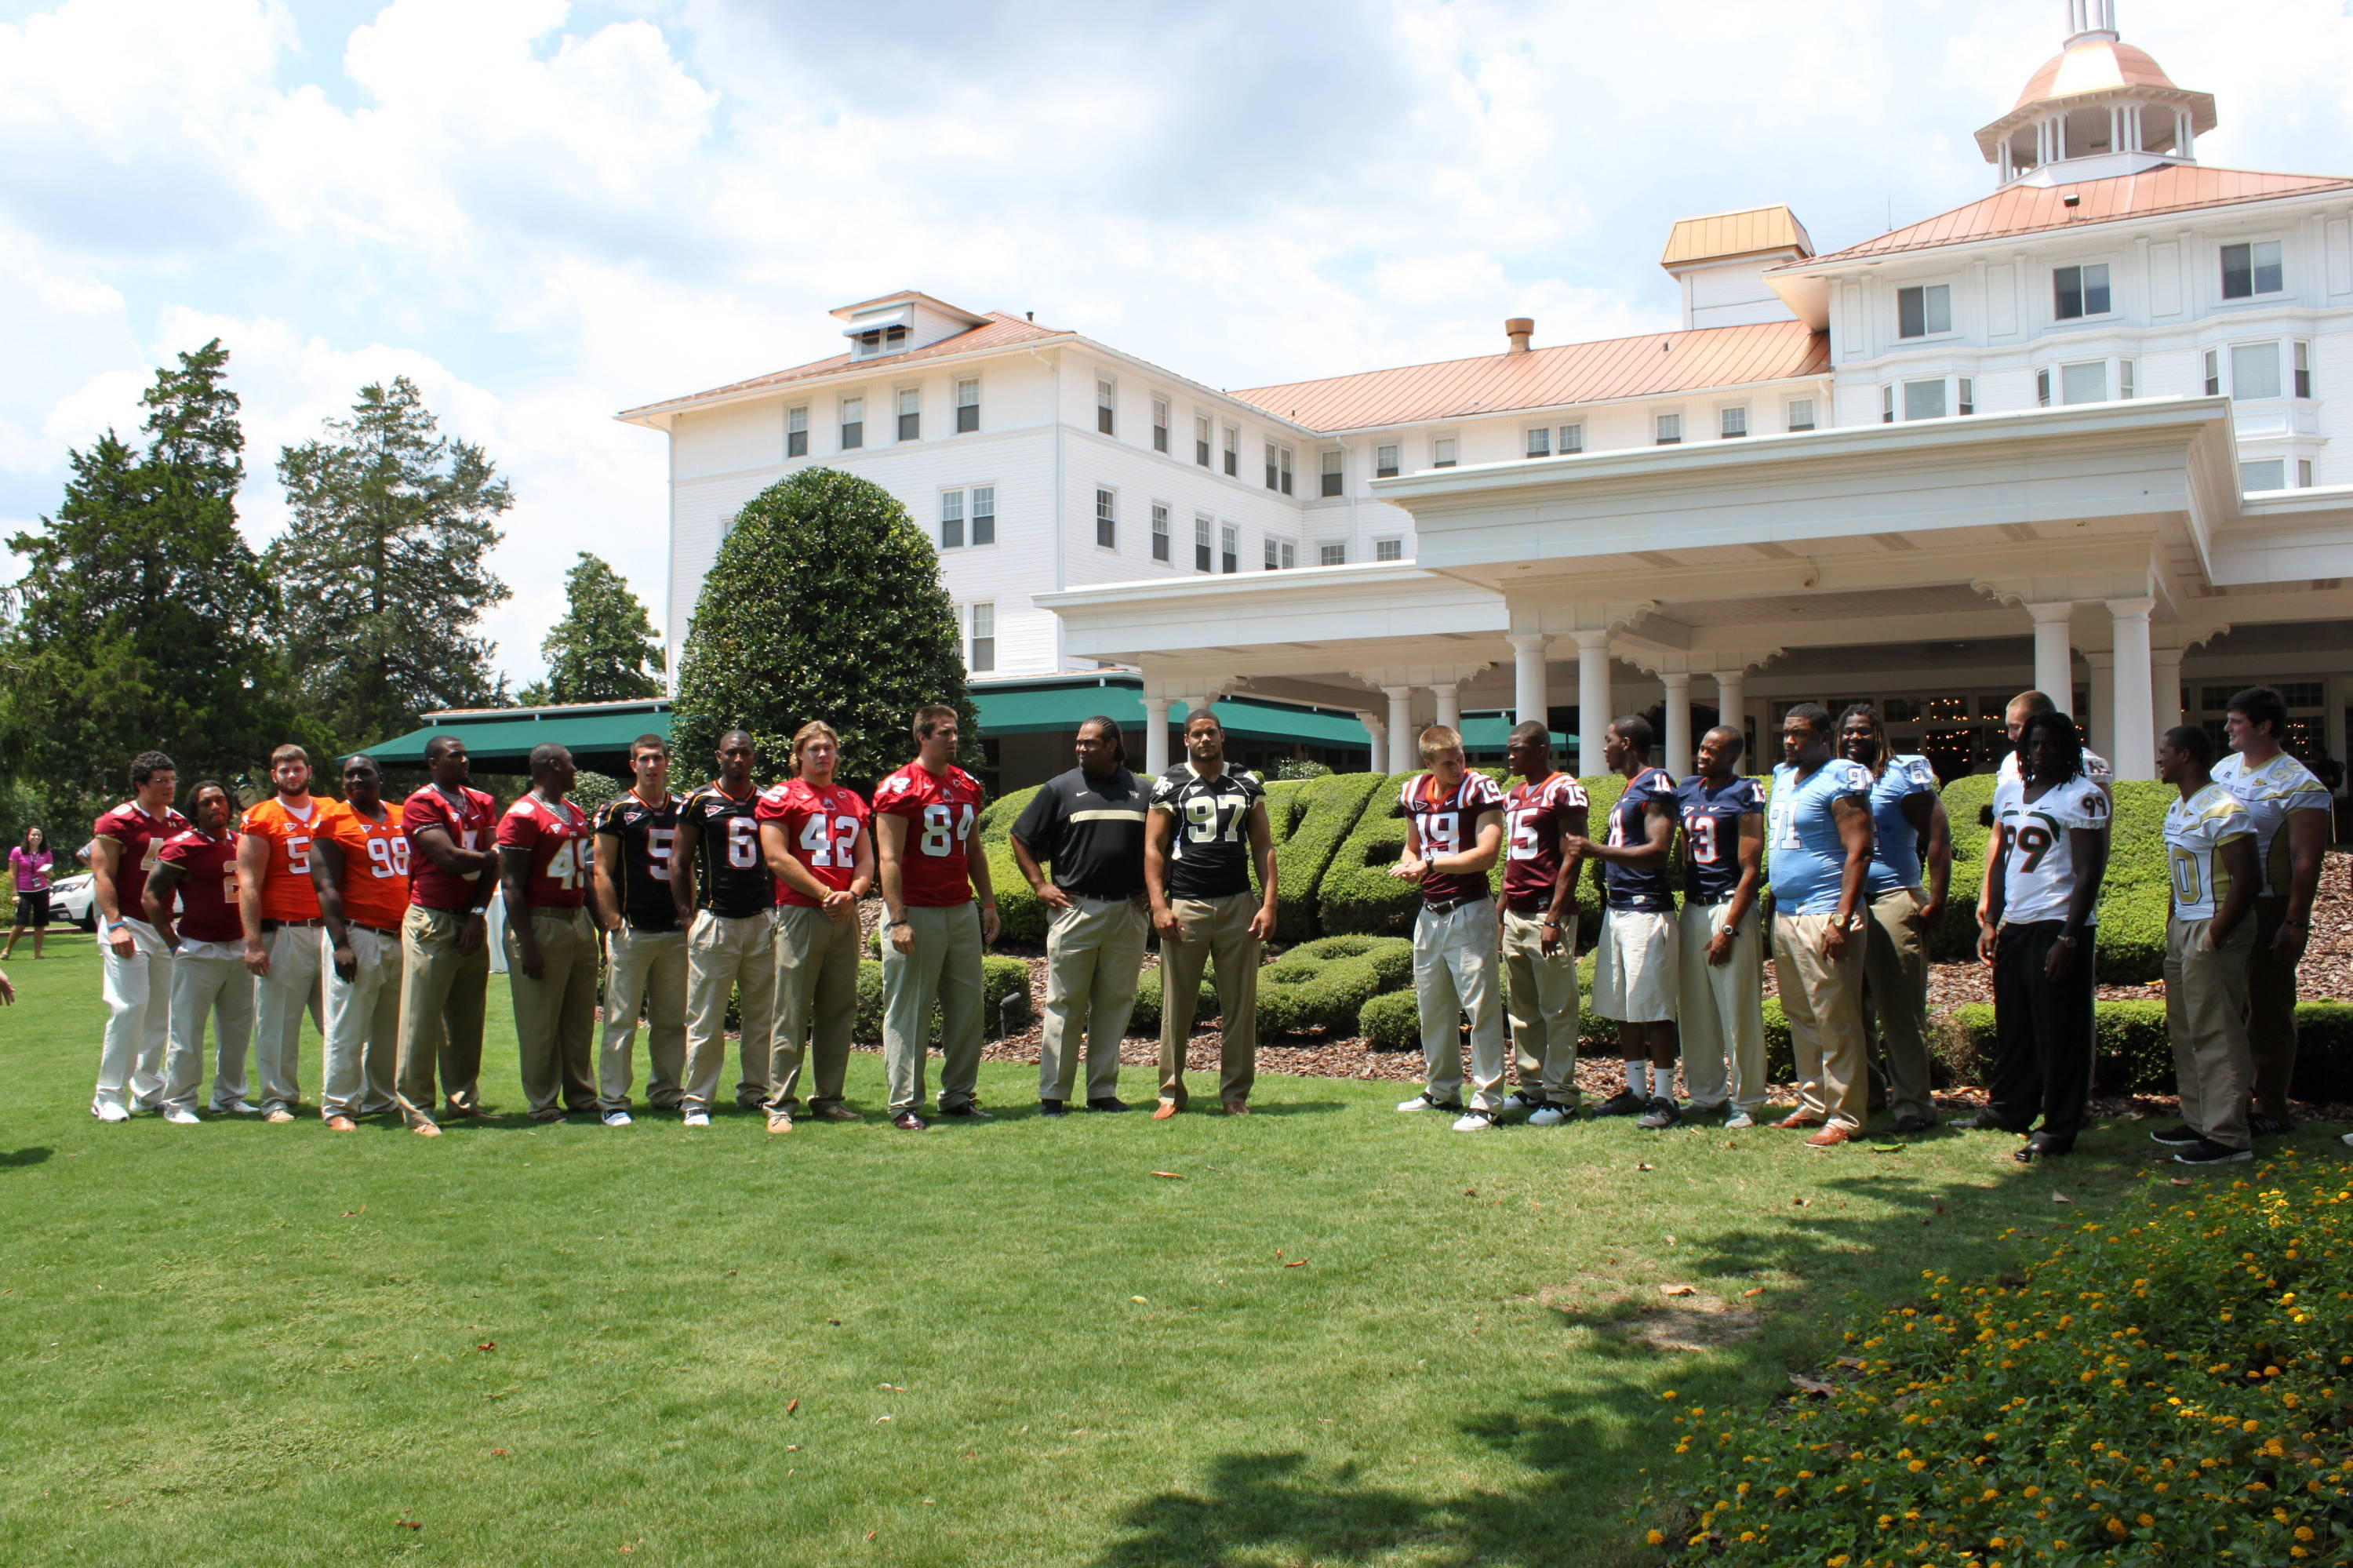 A stately pose by the ACC players participating in the 2011 Kickoff on the lawn at Pinehurst.